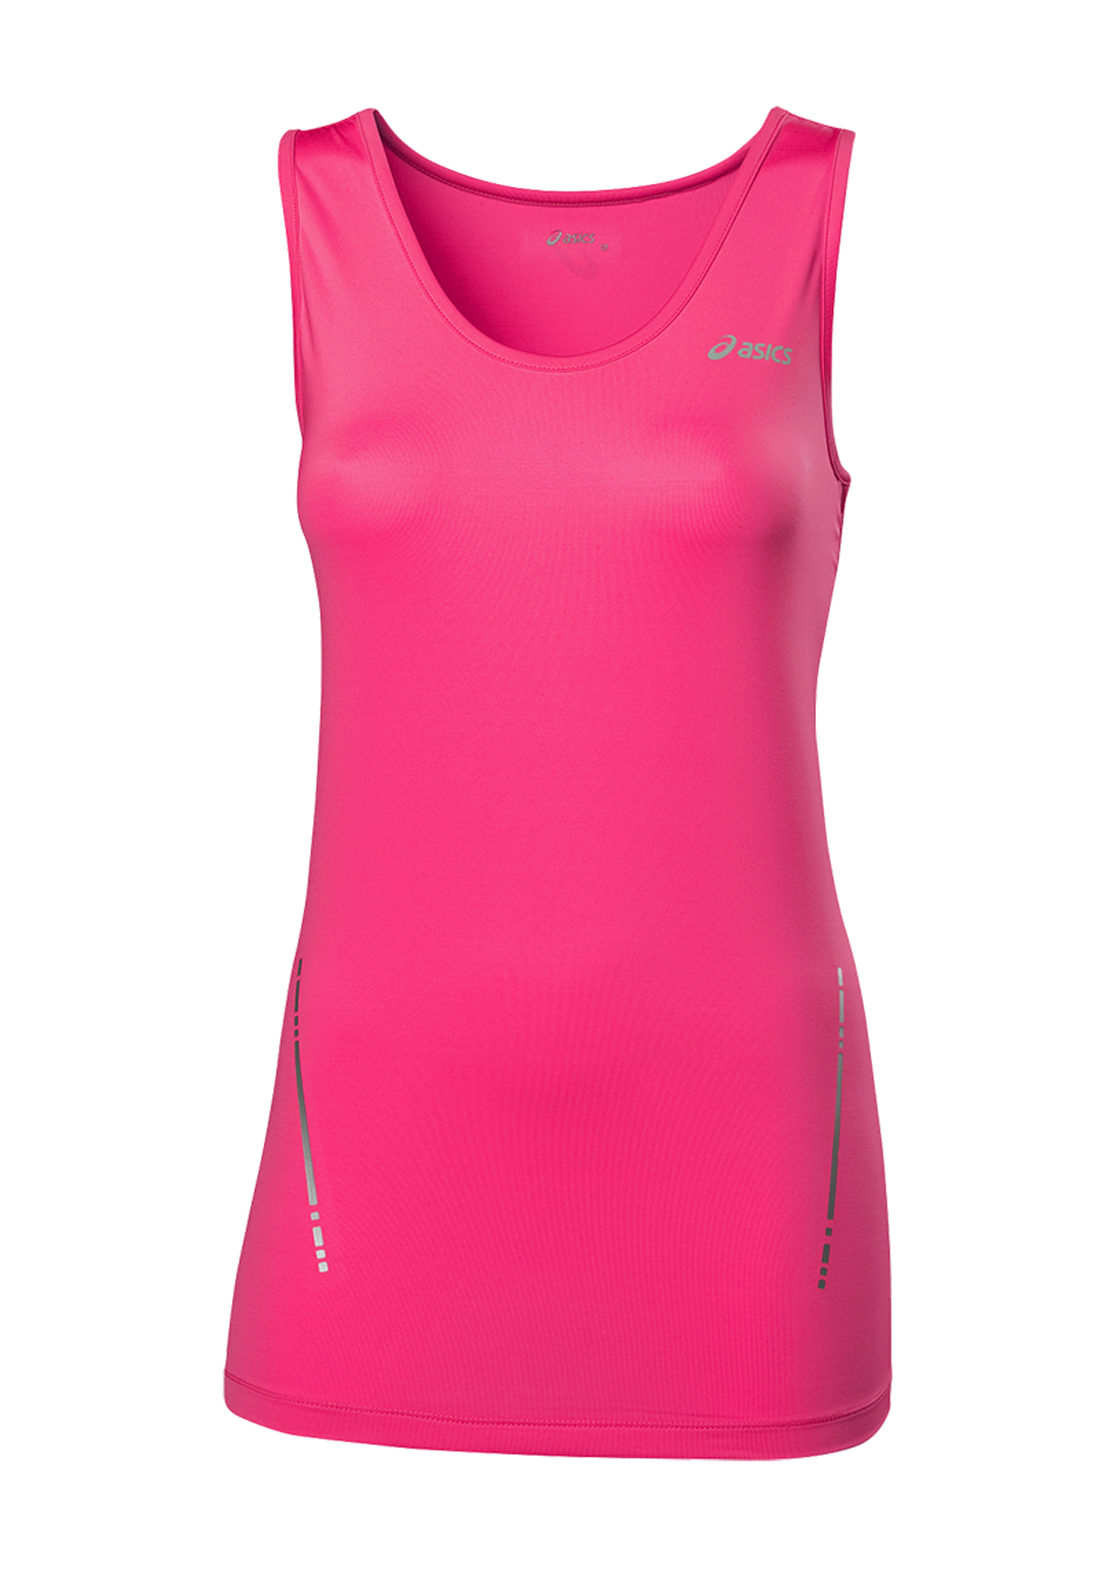 Asics Women's Tank Top, Pink